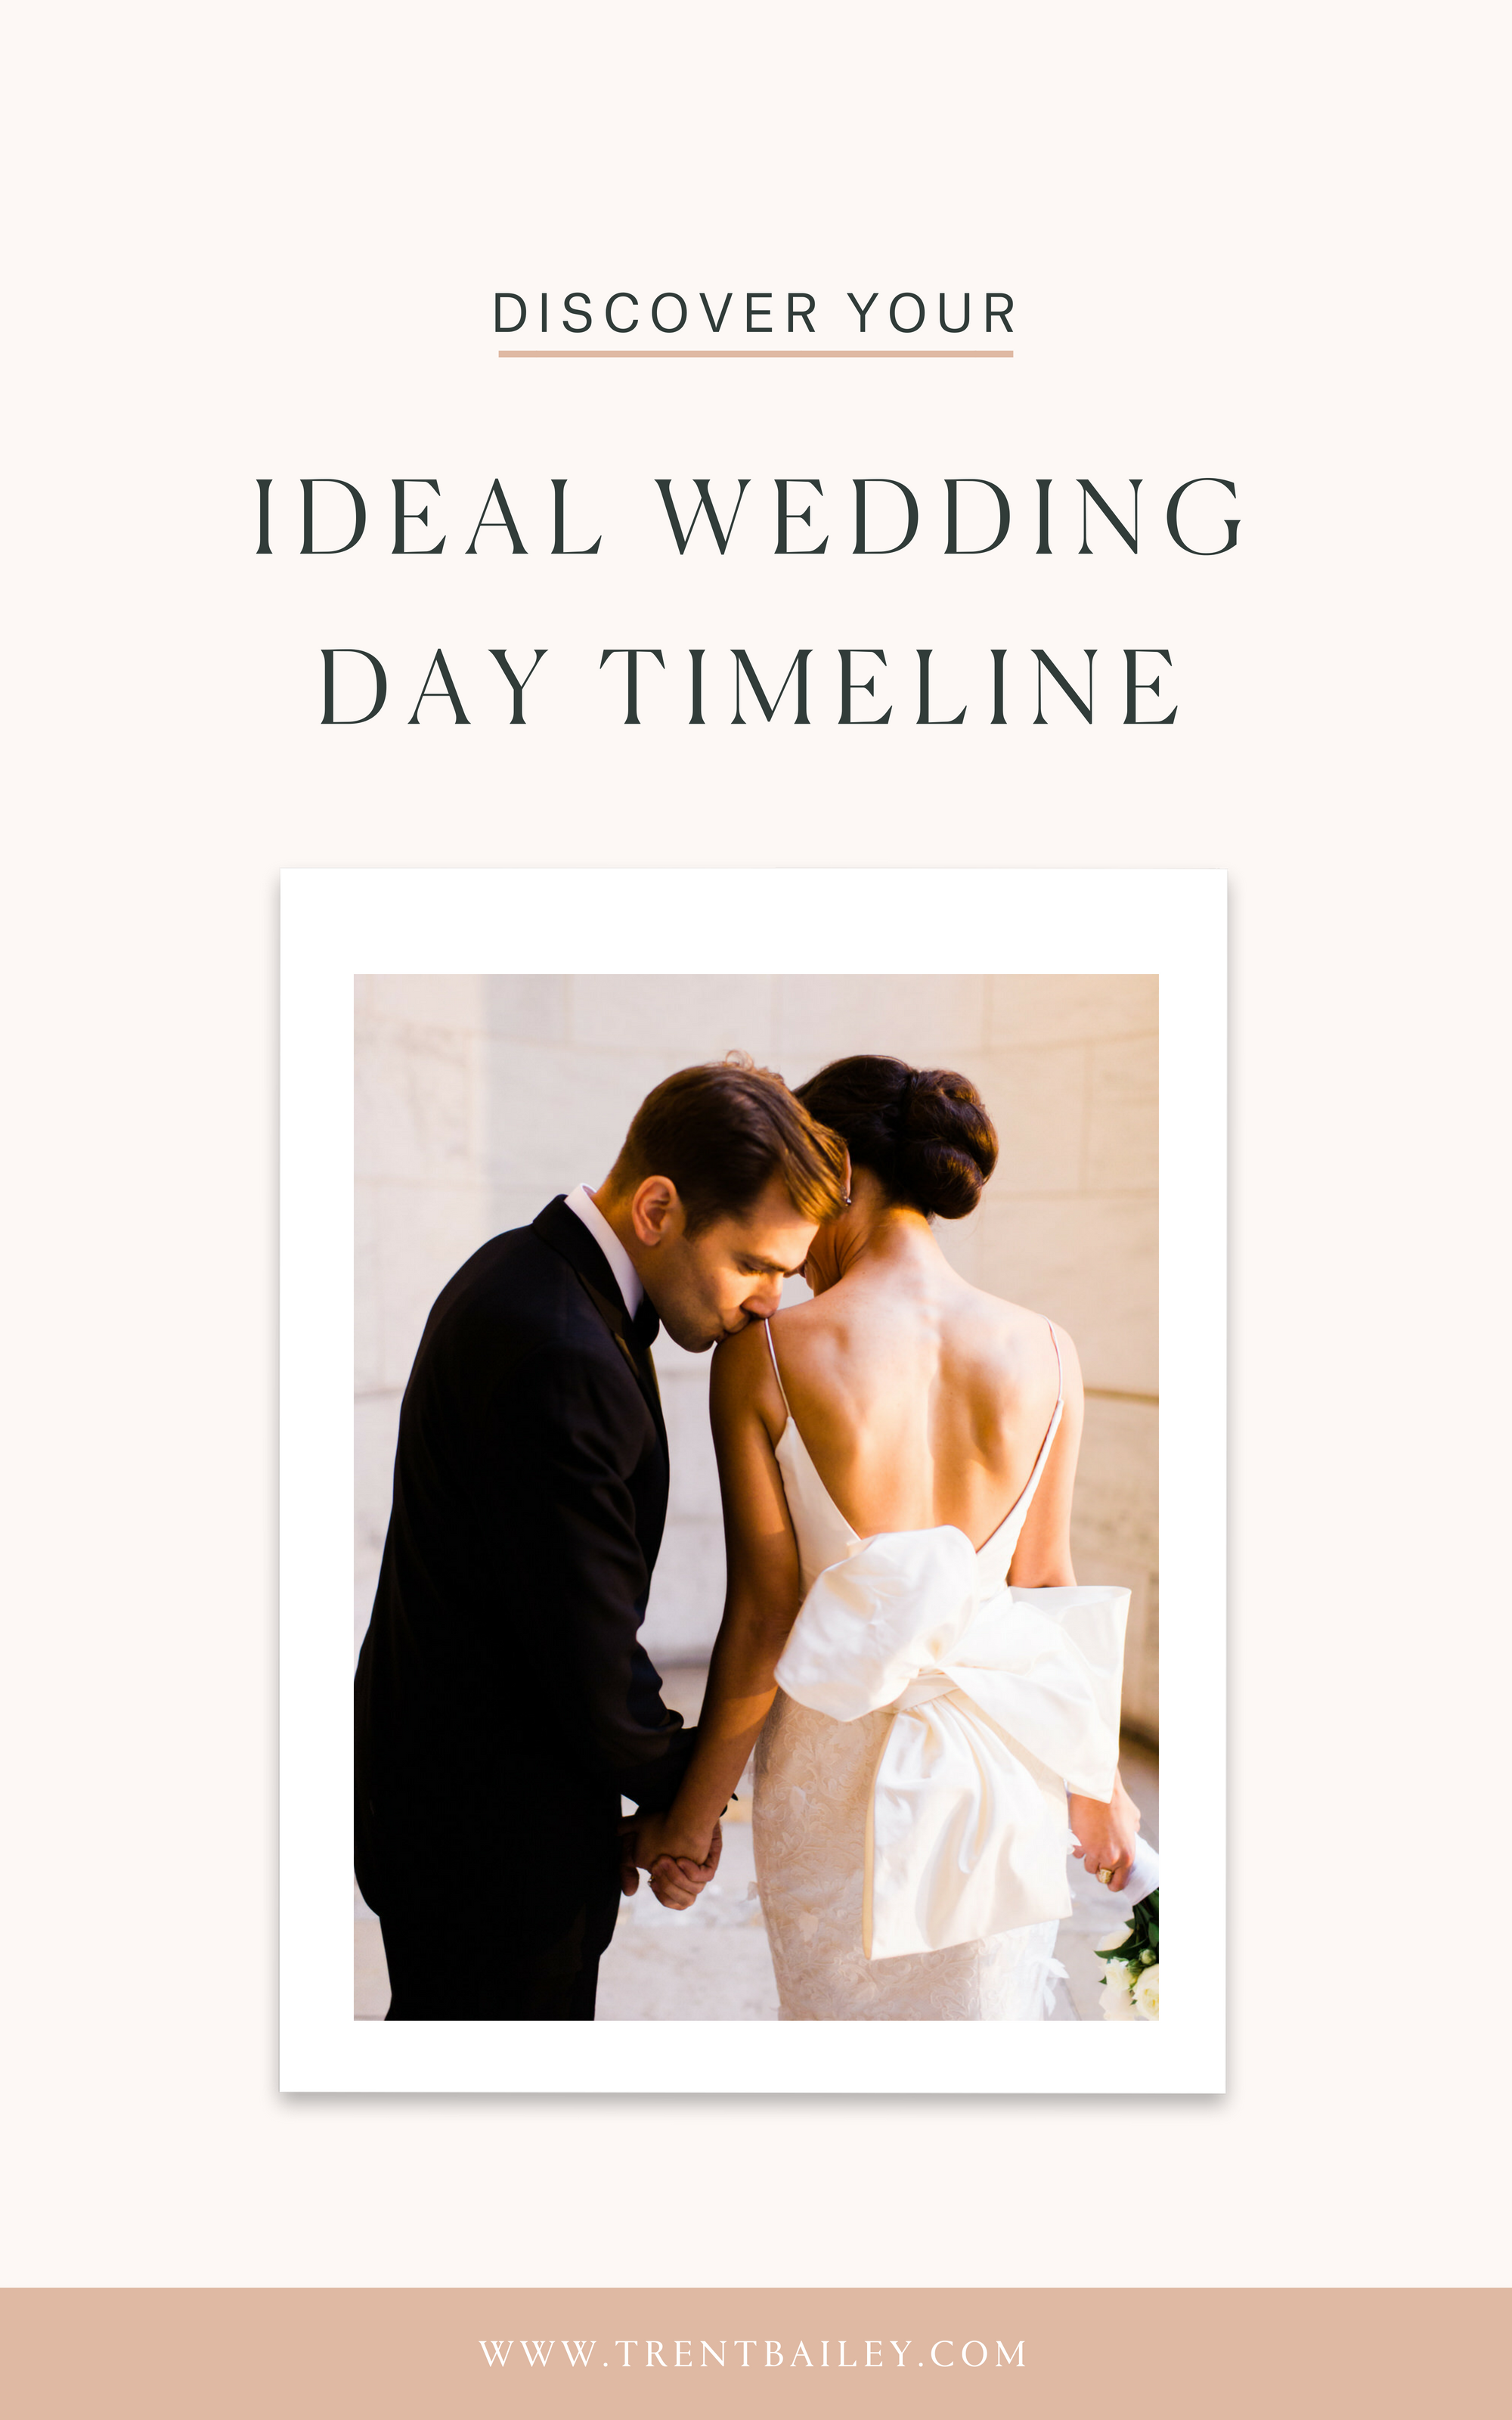 IDEAL WEDDING DAY TIMELINE FIRST LOOK - IDEAL WEDDING DAY TIMELINE